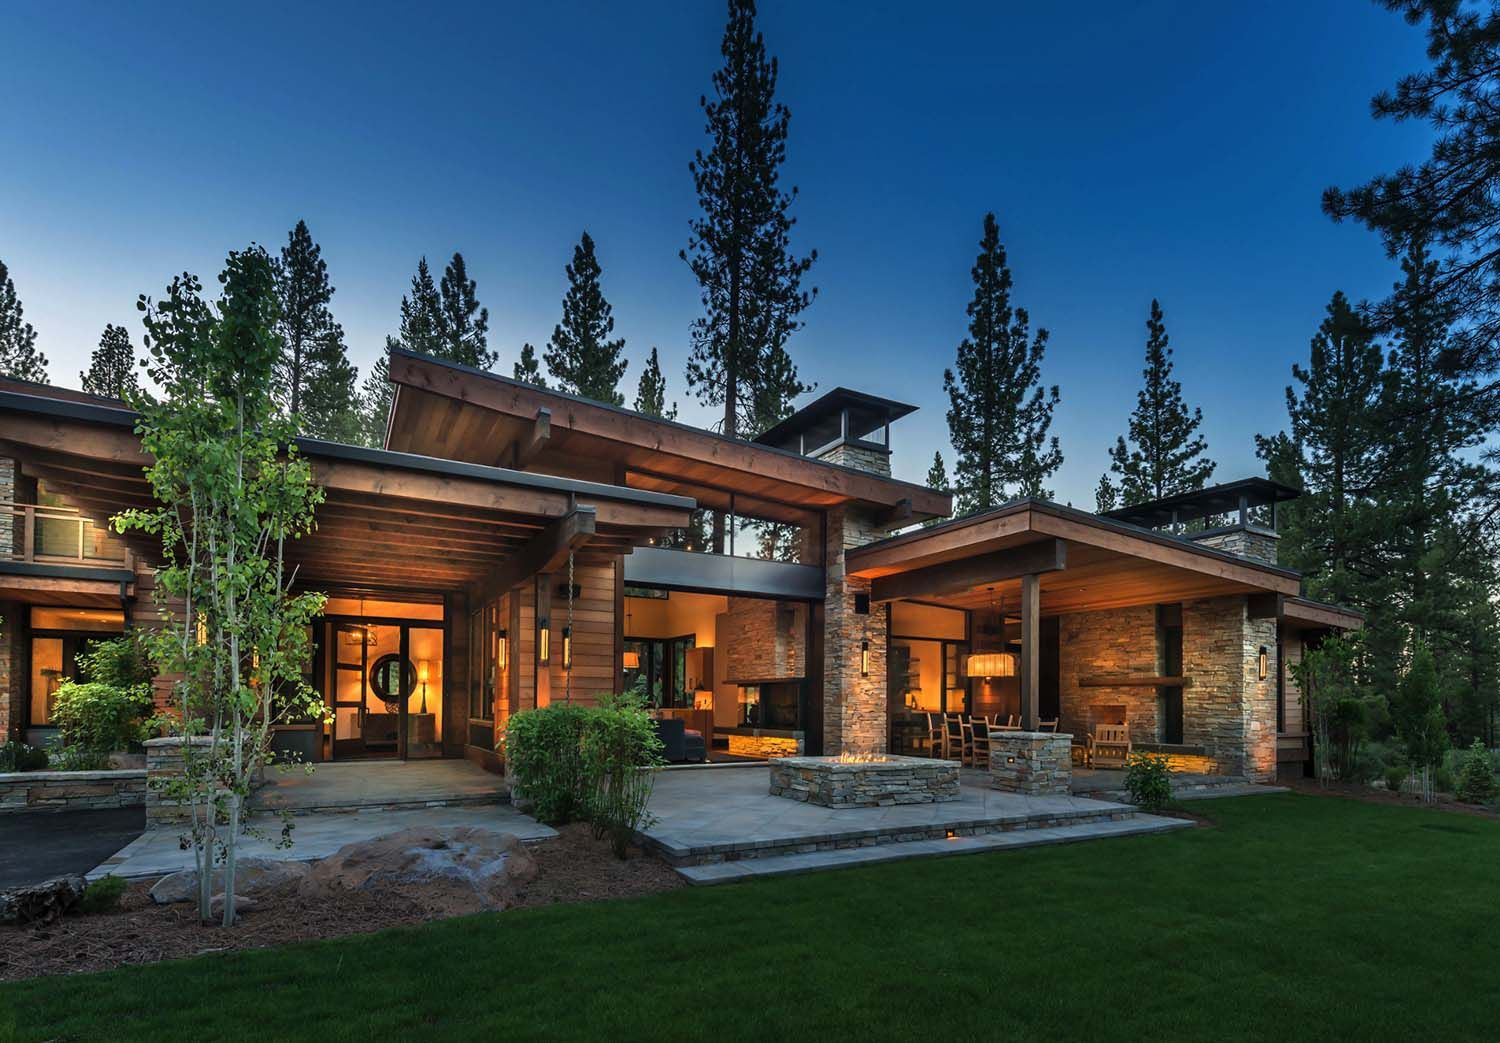 Small Contemporary Mountain Home Plans: Mountain Modern Home In Martis Camp With Indoor-outdoor